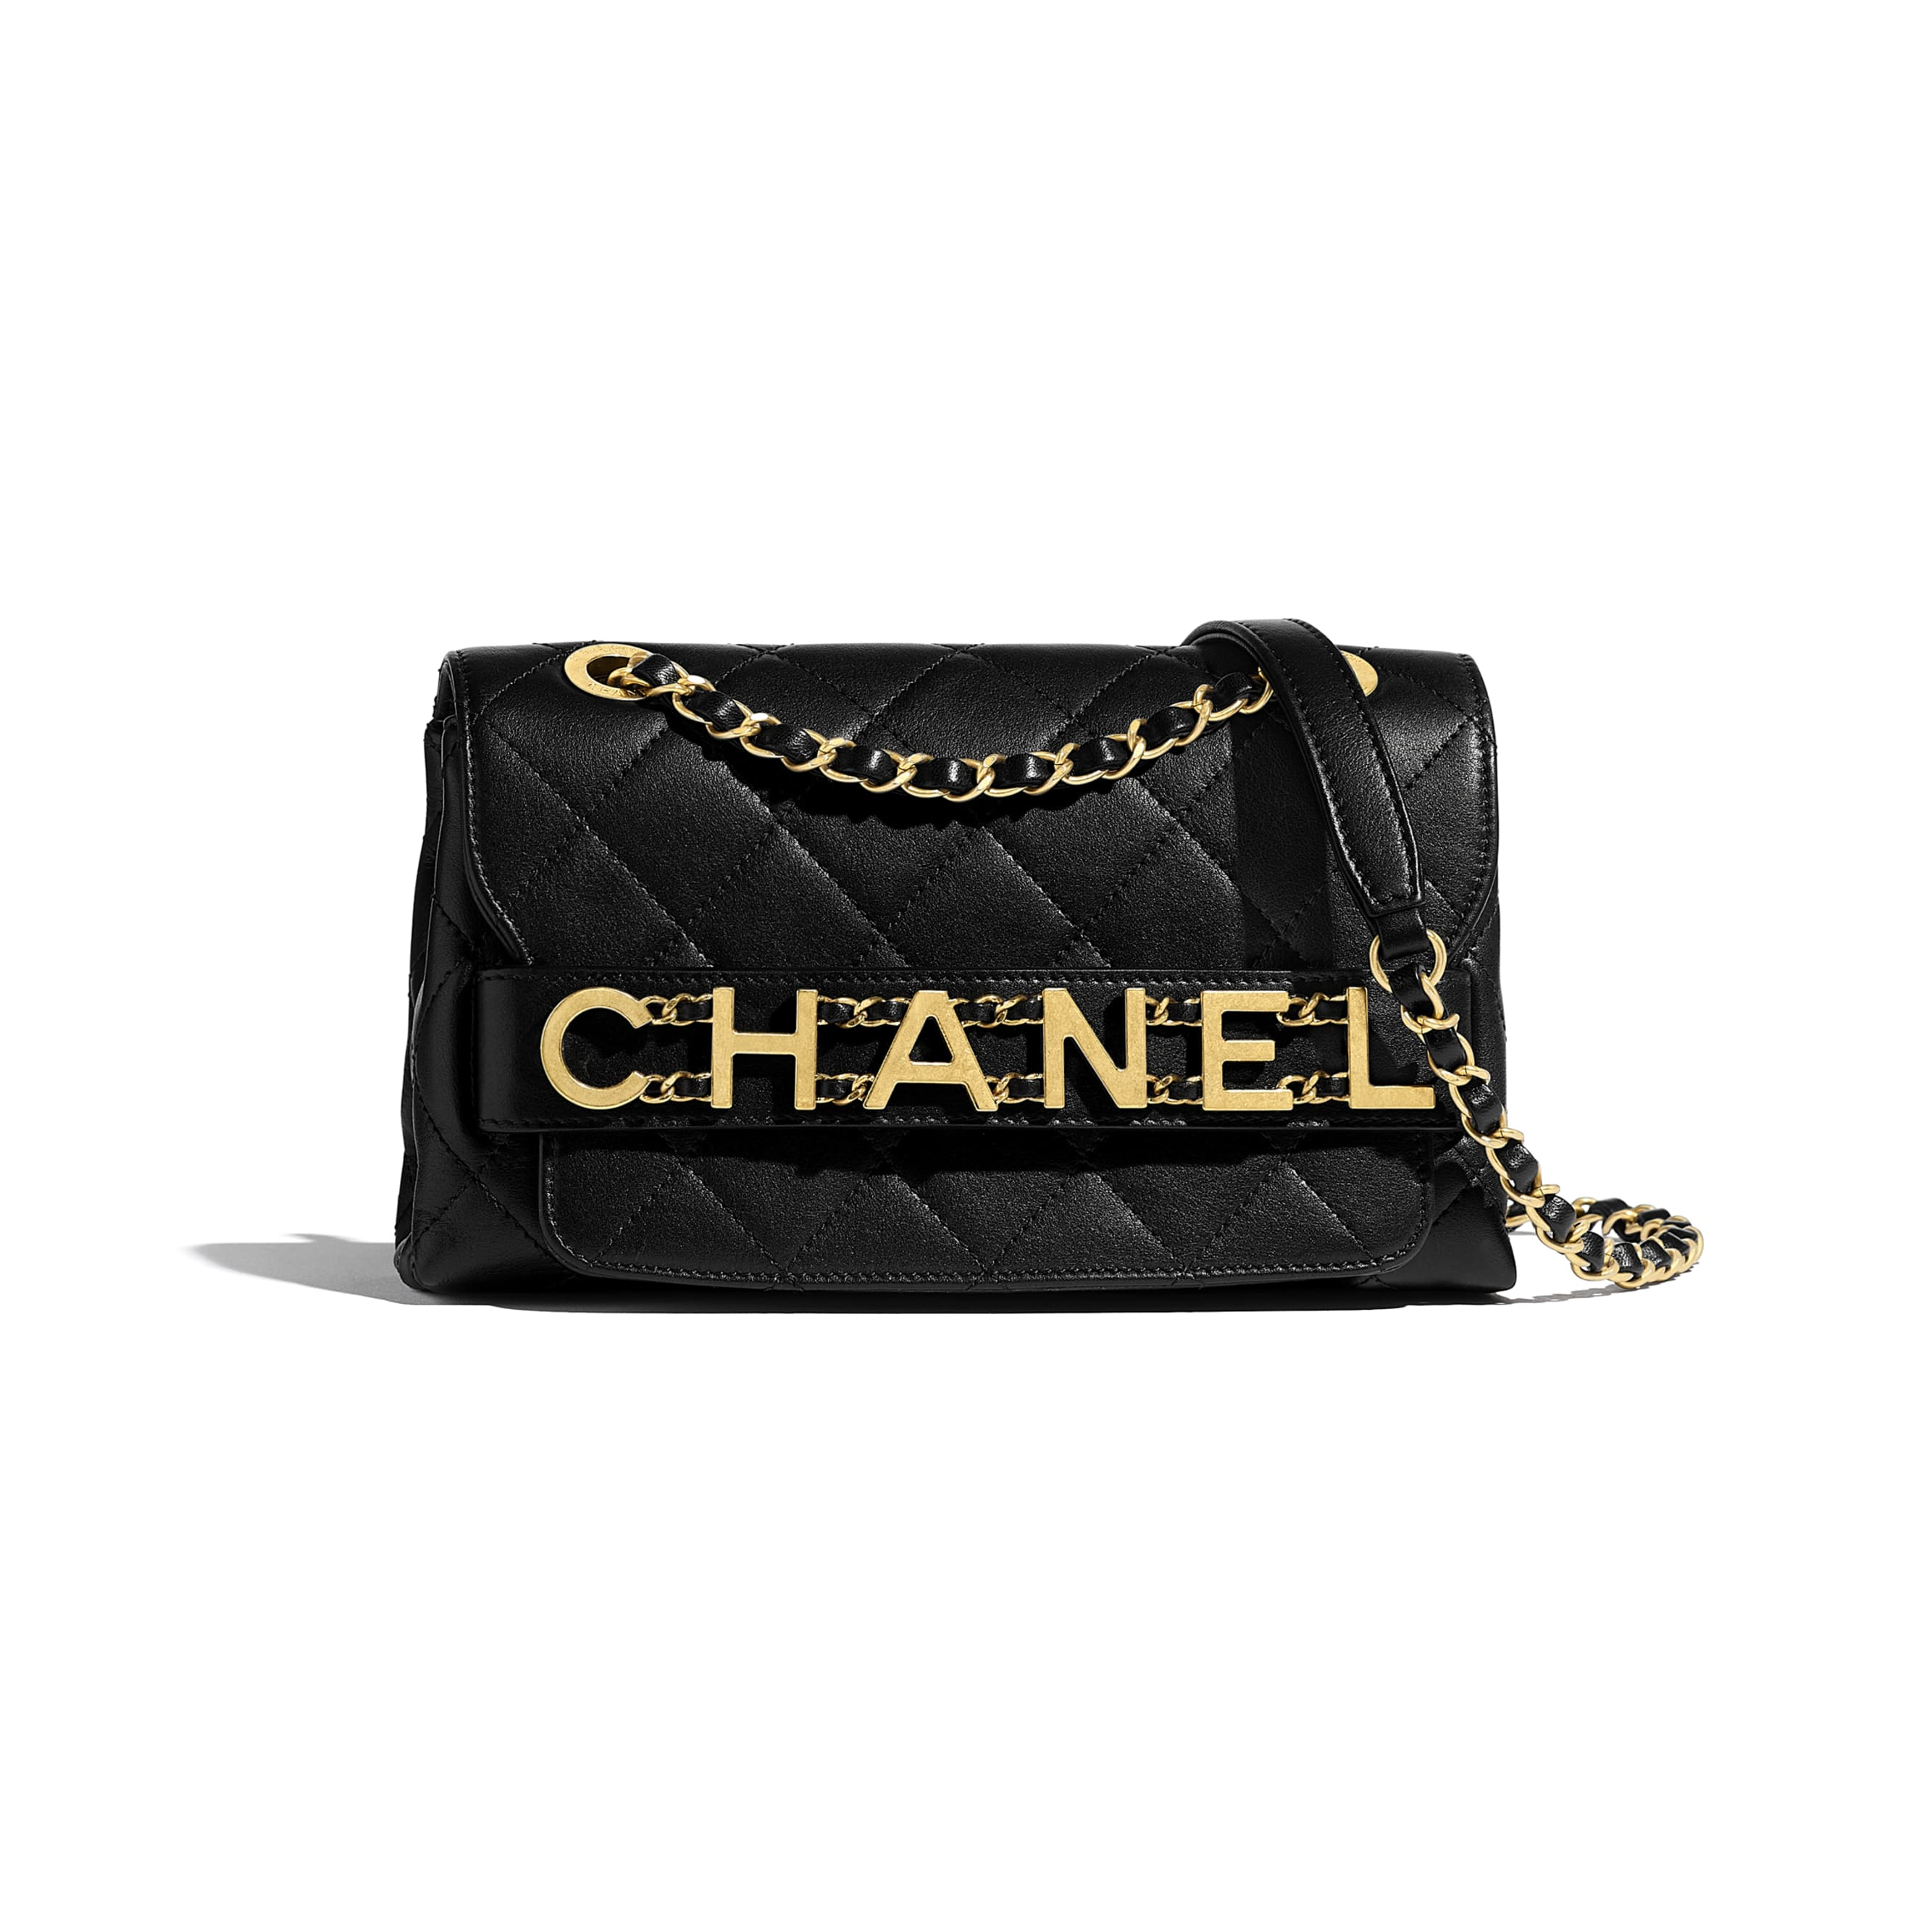 Small Flap Bag - Black - Calfskin & Gold-Tone Metal - CHANEL - Default view - see standard sized version